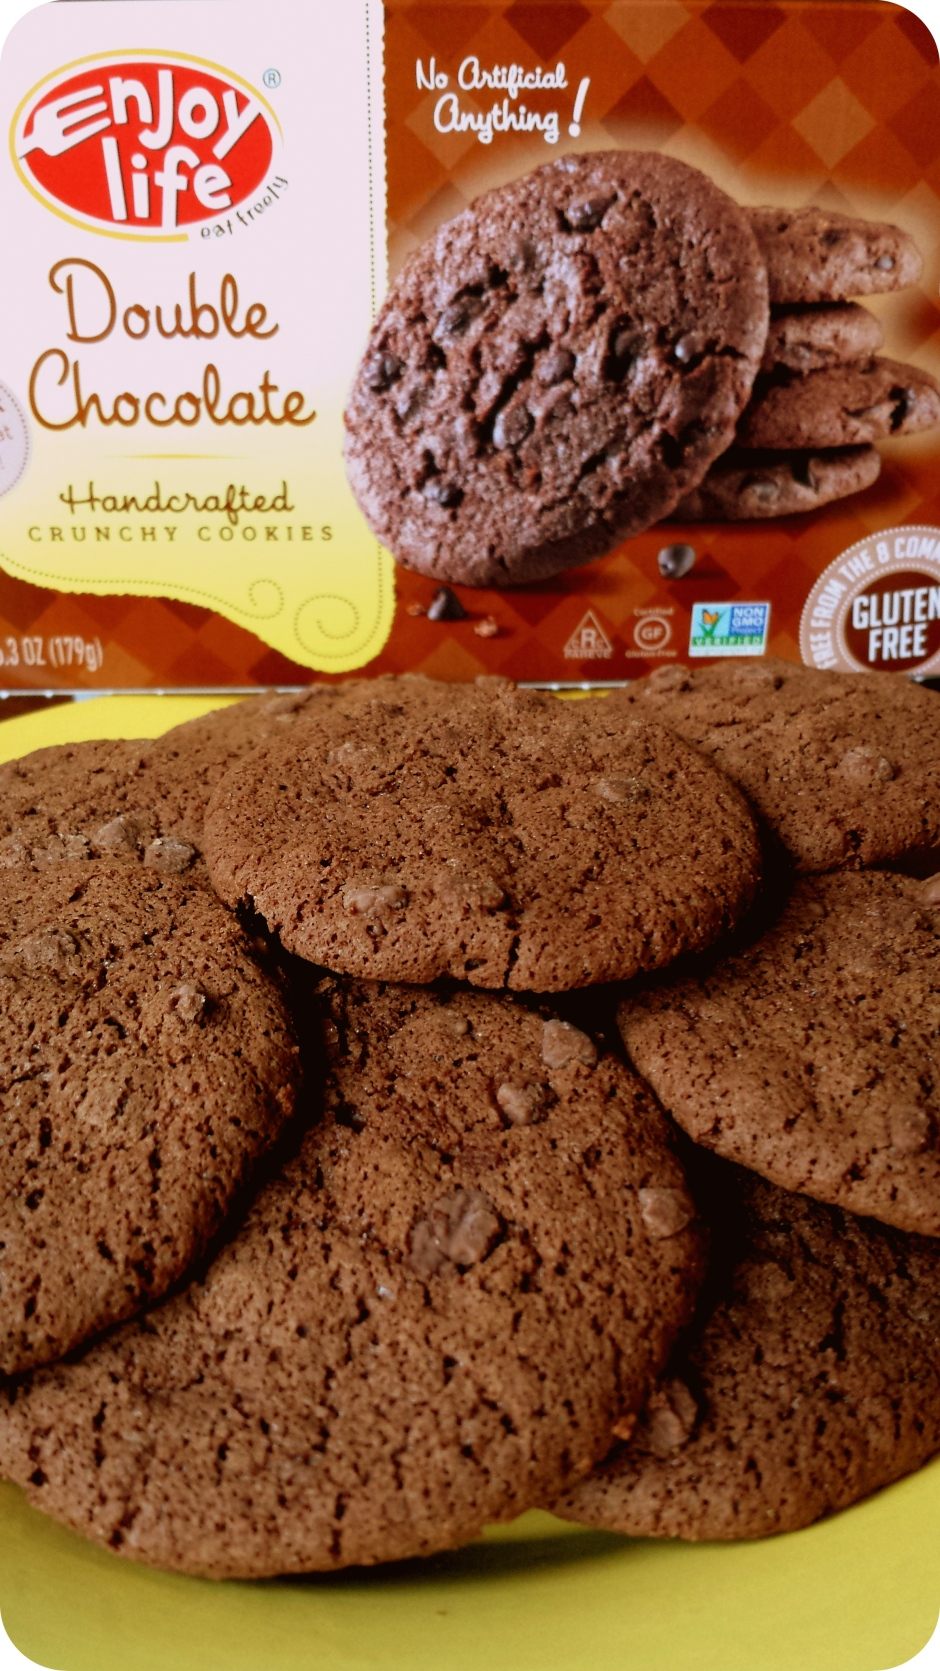 C is for Cookie - Enjoy Life gluten-free, vegan double chocolate